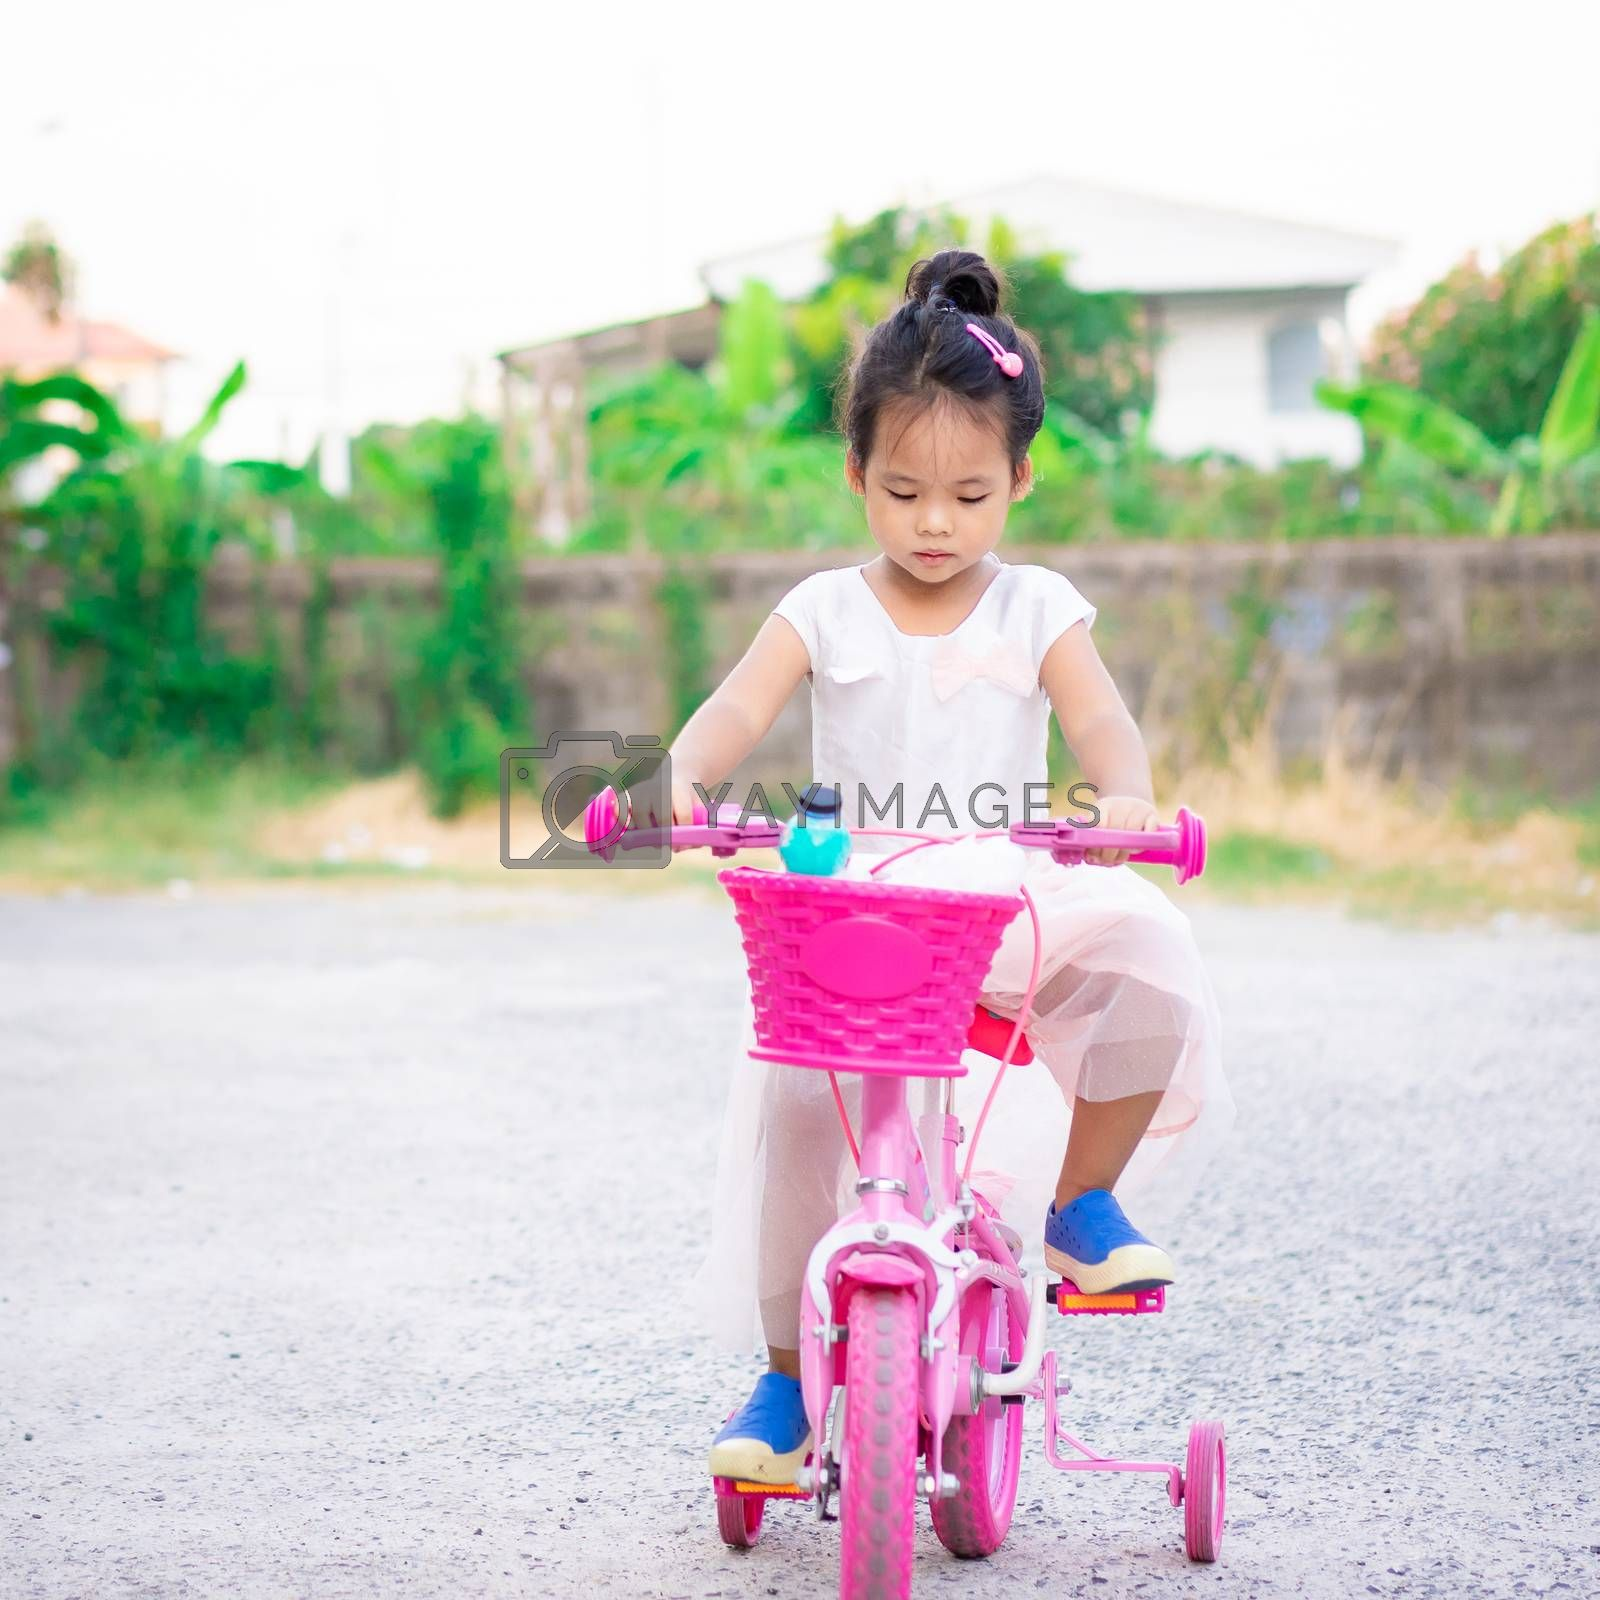 Cute little asian girl riding a bicycle to exercise on the street, kids sport and active lifestyle